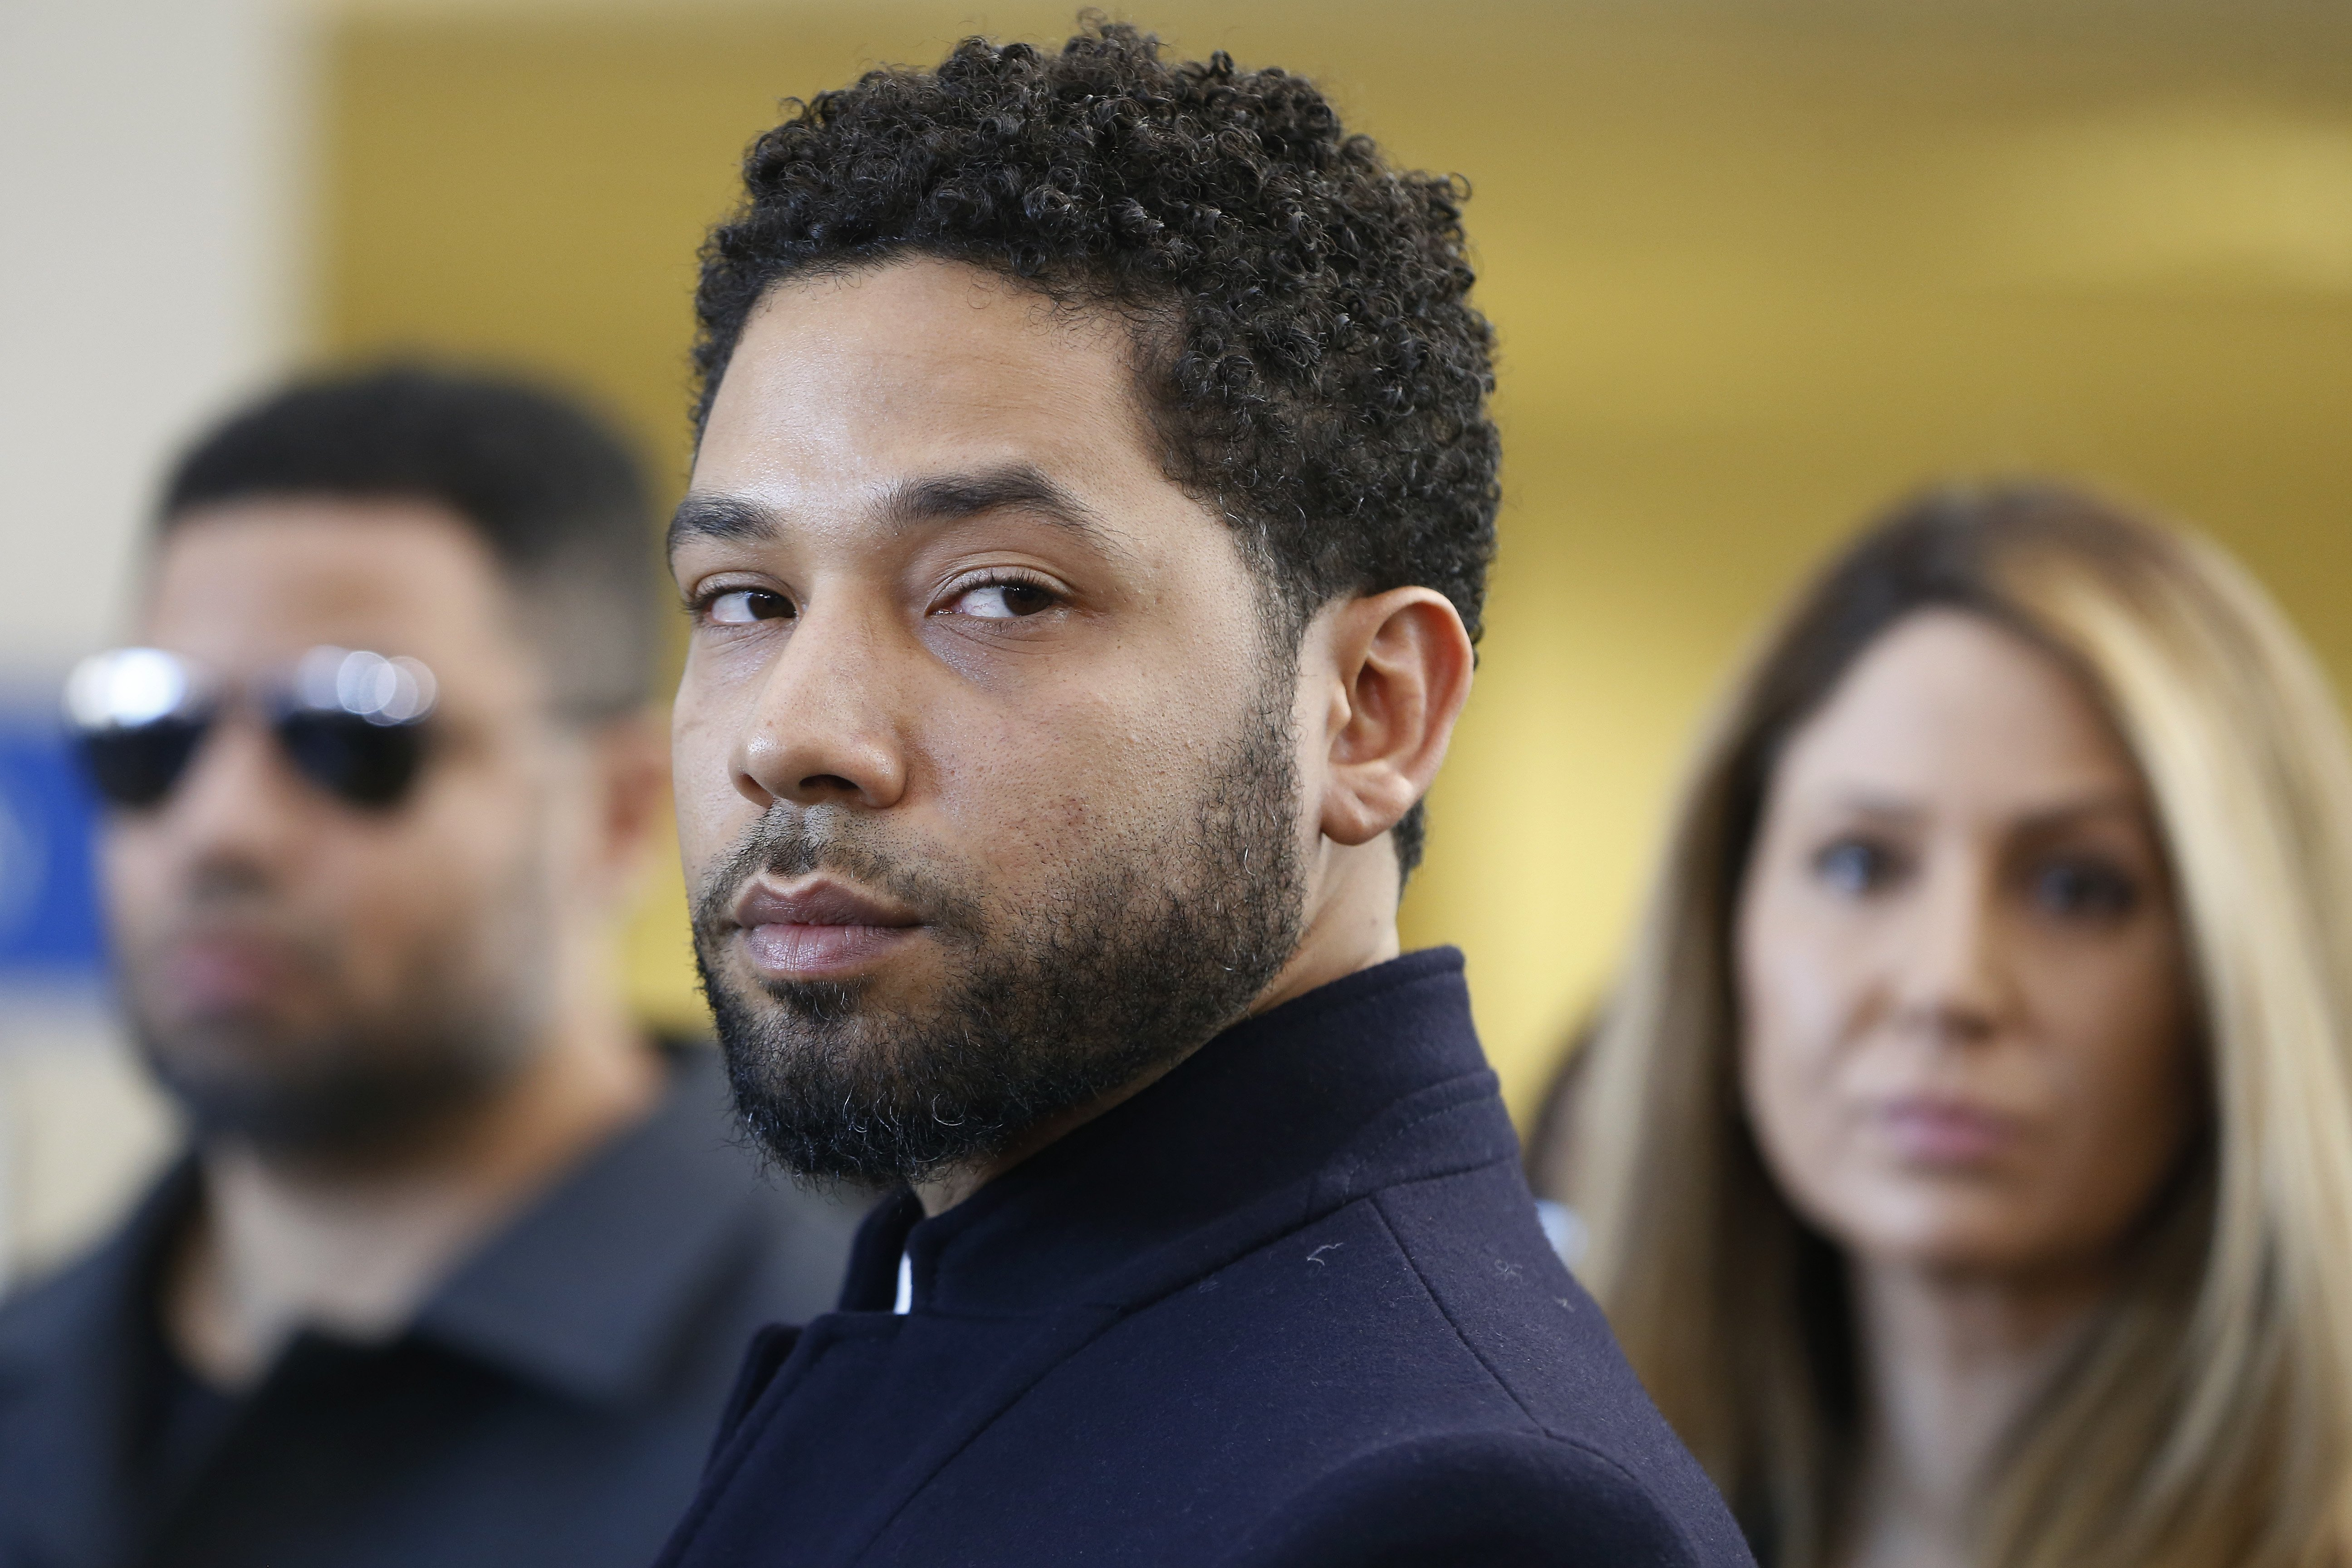 Jussie Smollett after his court appearance at Leighton Courthouse on March 26, 2019. | Photo: GettyImages